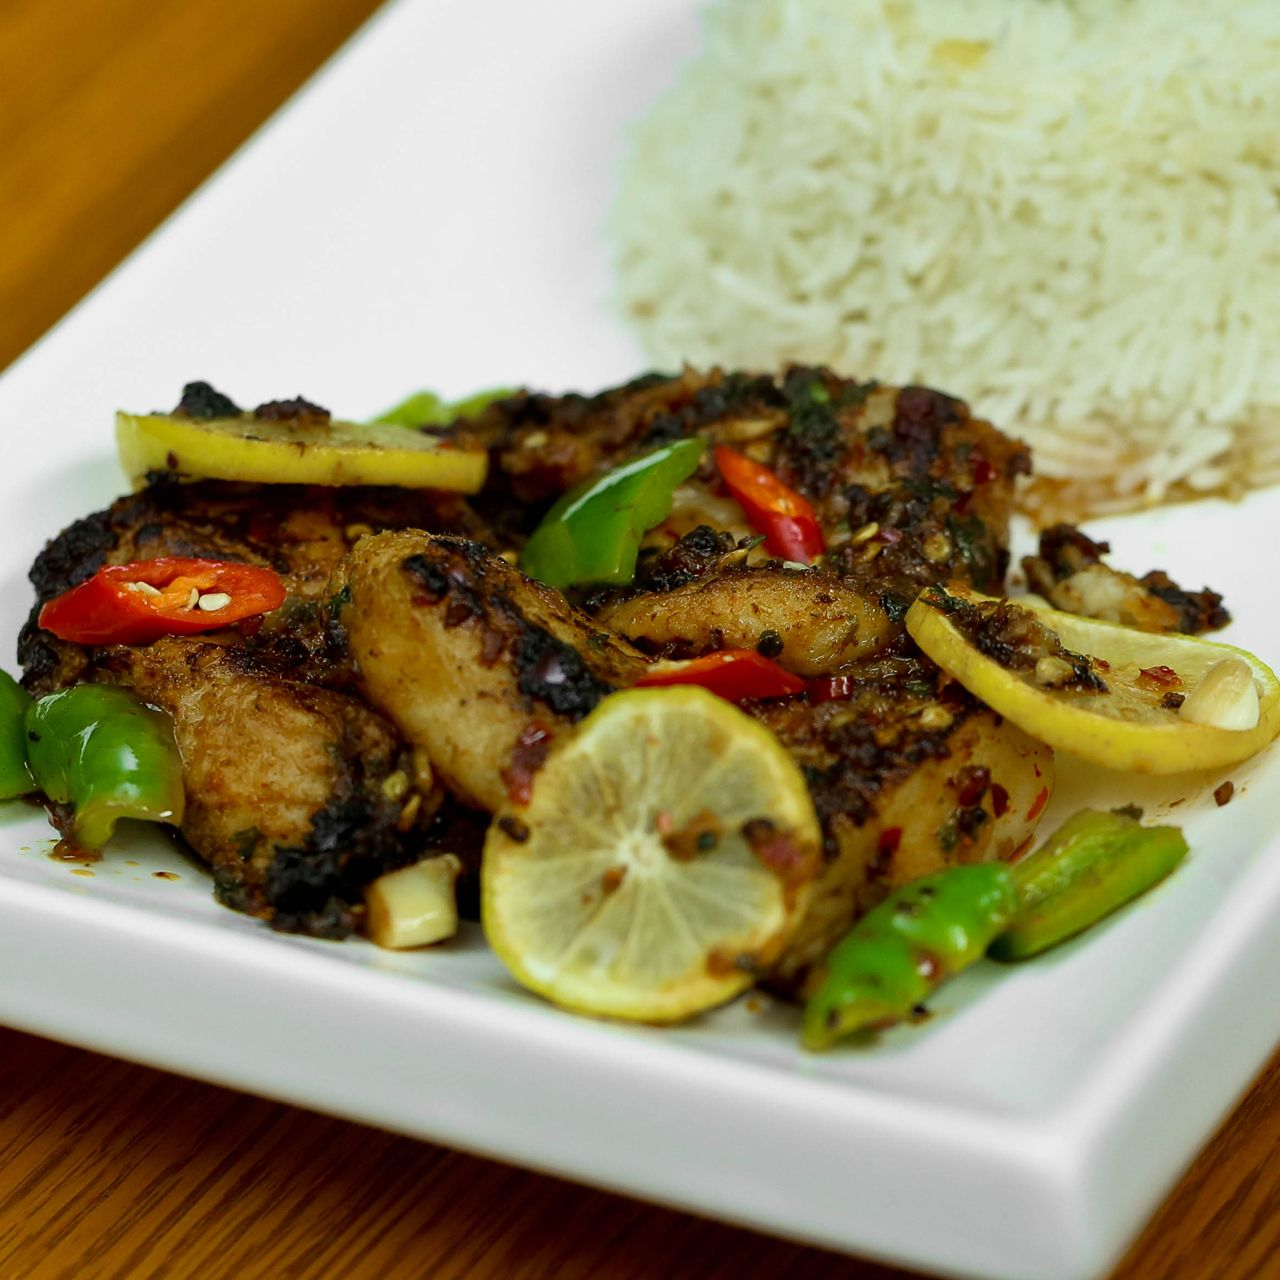 Pangasius fish seared with aromatic spices and packed with